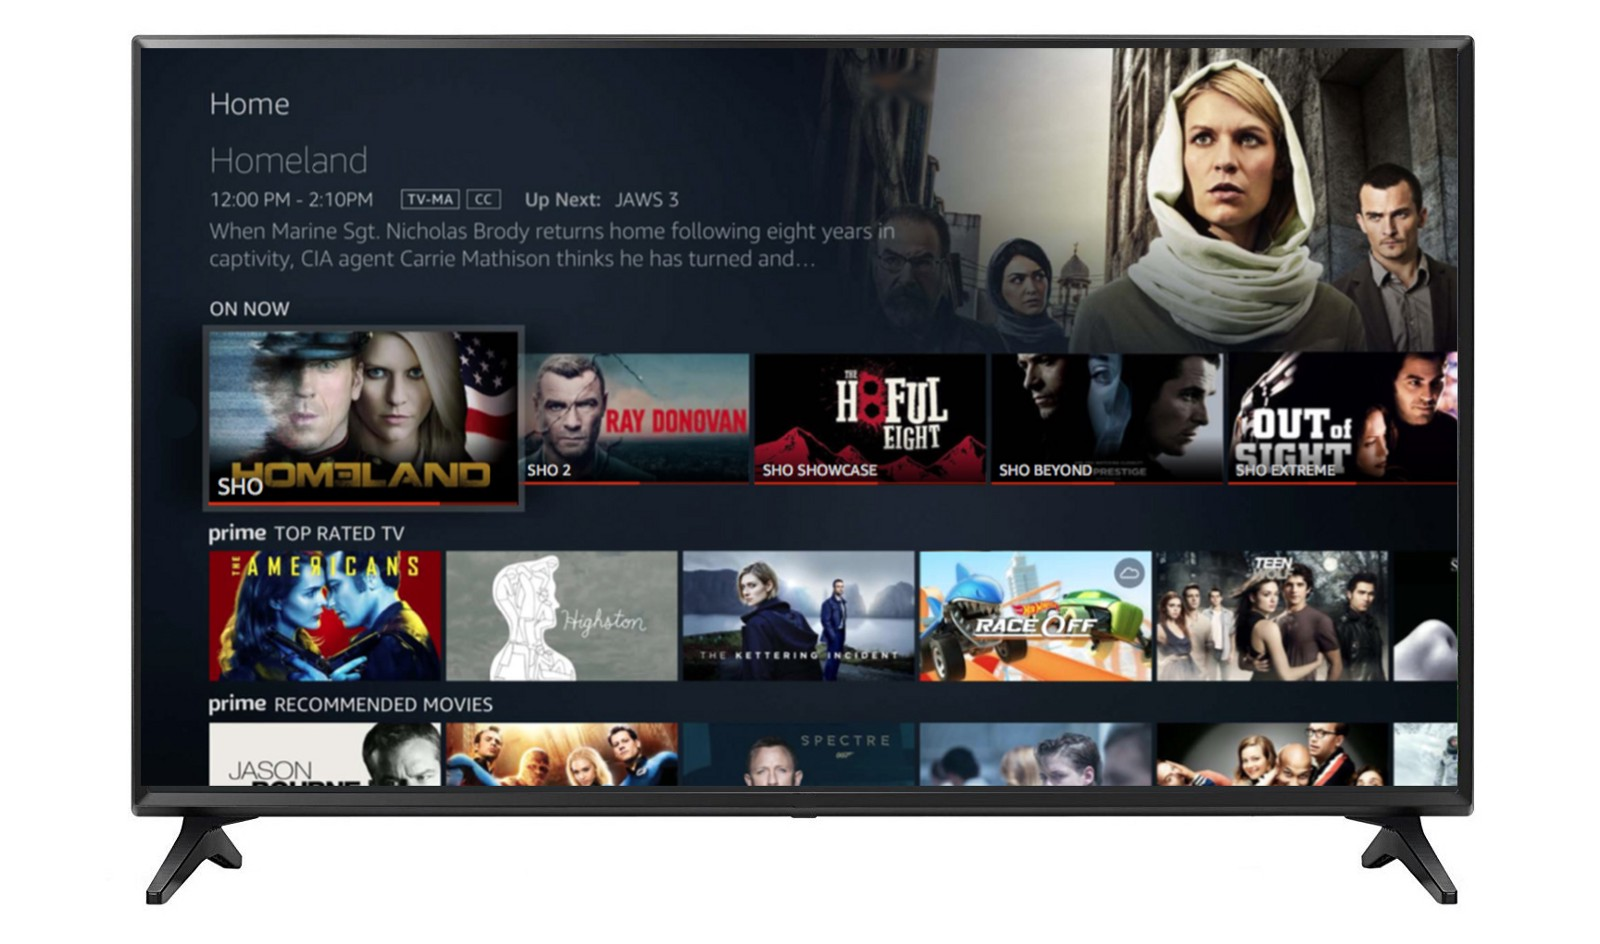 Amazon Fire TV becomes an interface for Live TV with select